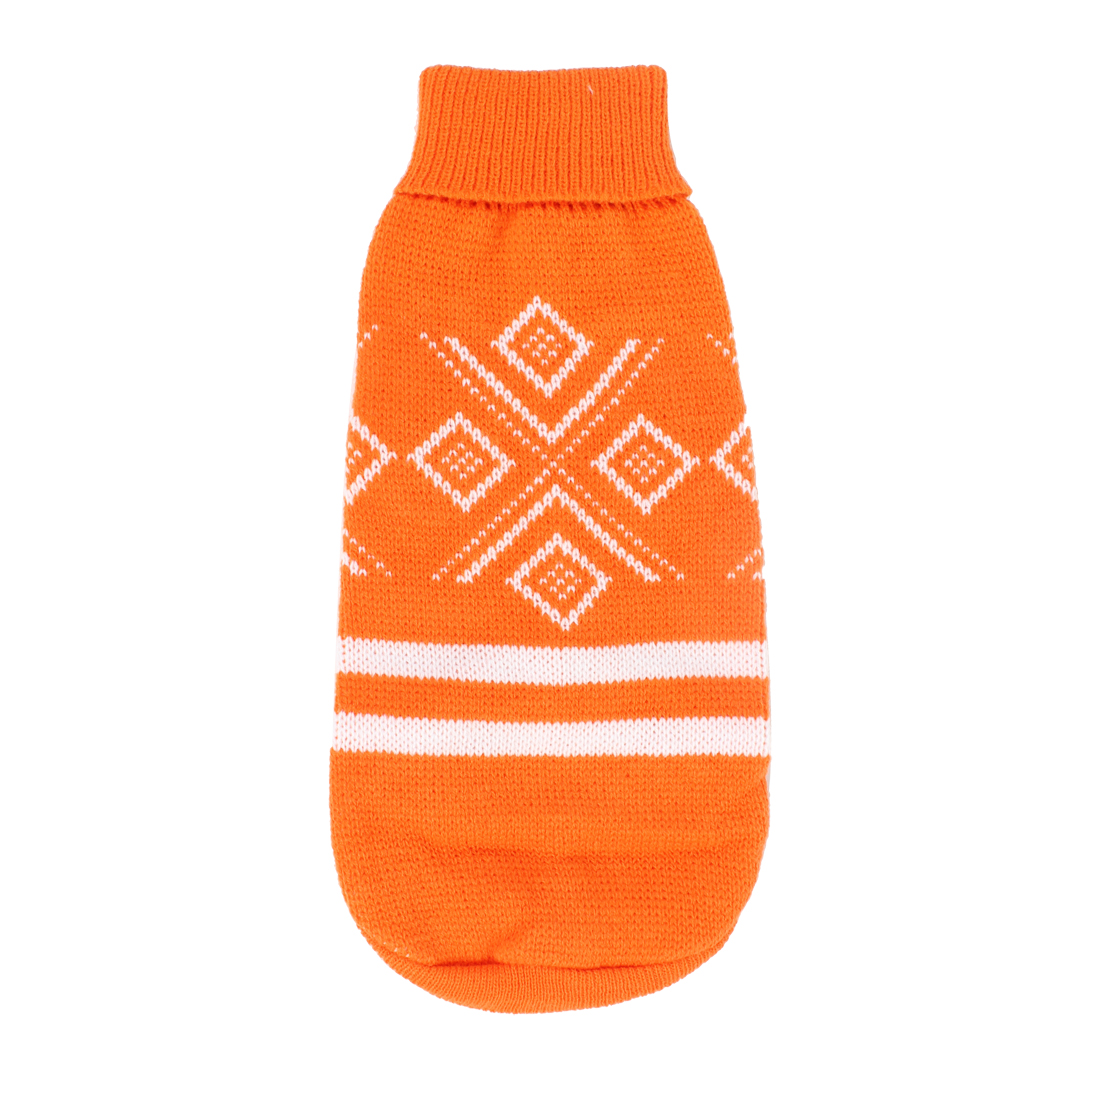 Pet Dog Rhombus Pattern Turtleneck Warm Clothes Knitwear Sweater Orange Size L